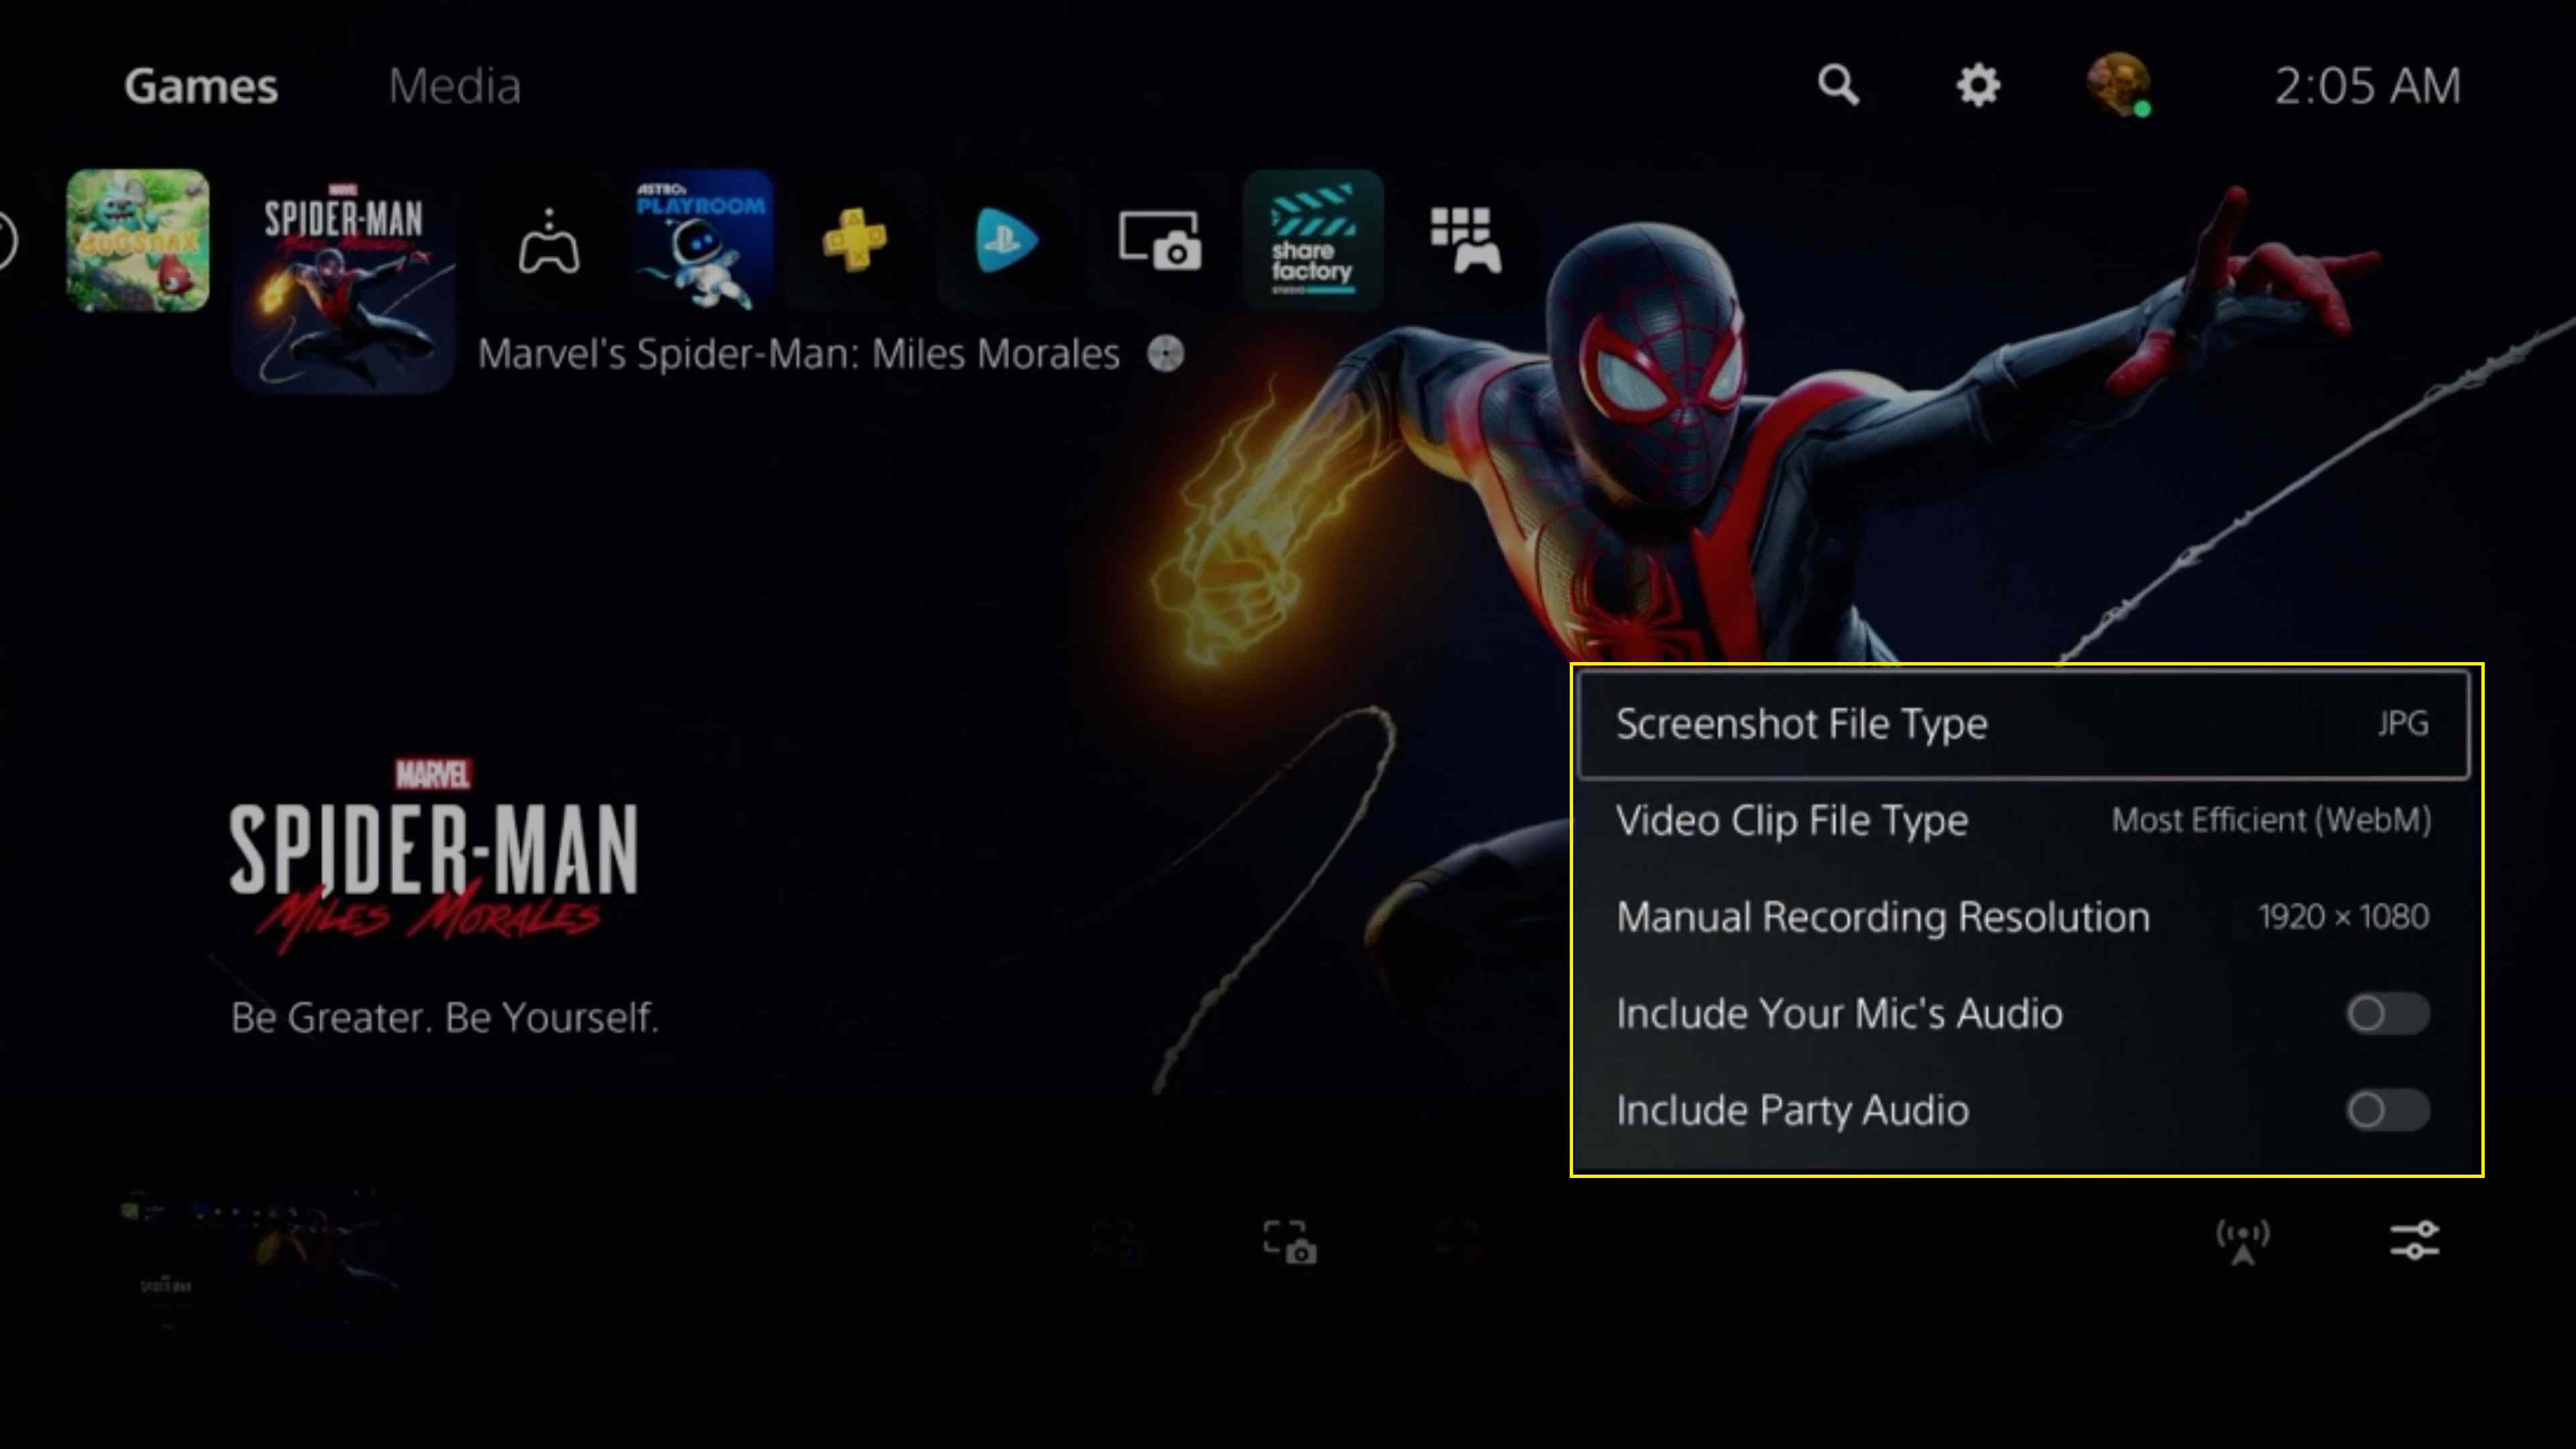 Capture options on a PlayStation 5